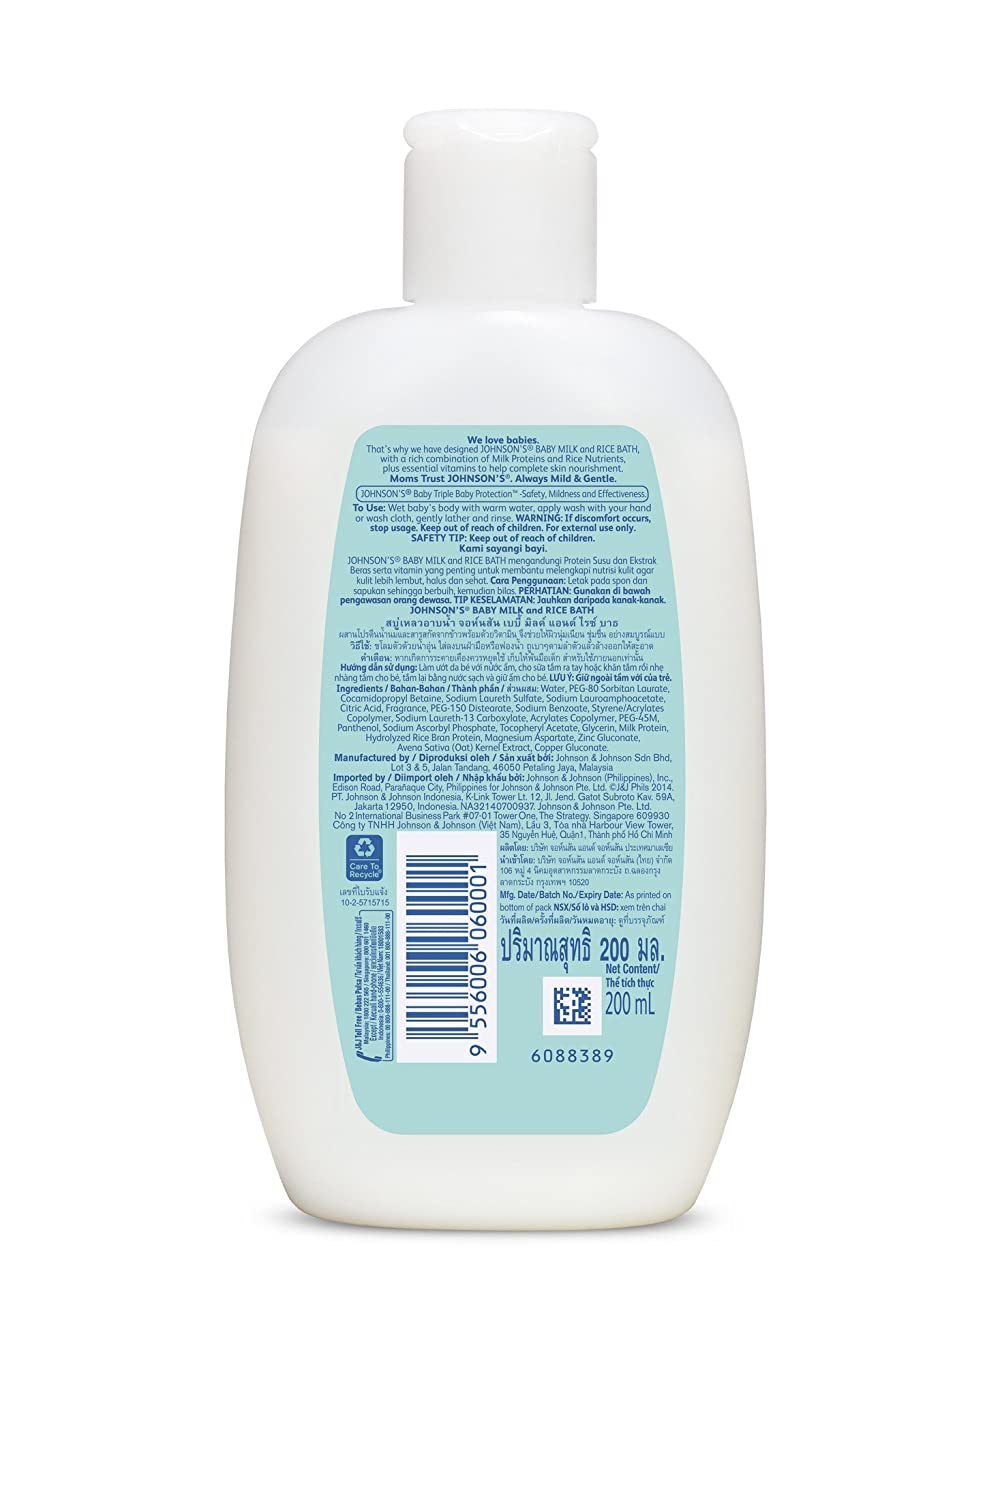 Buy Johnson\'s Baby Milk Bath, 200ml Online at Low Prices in India ...